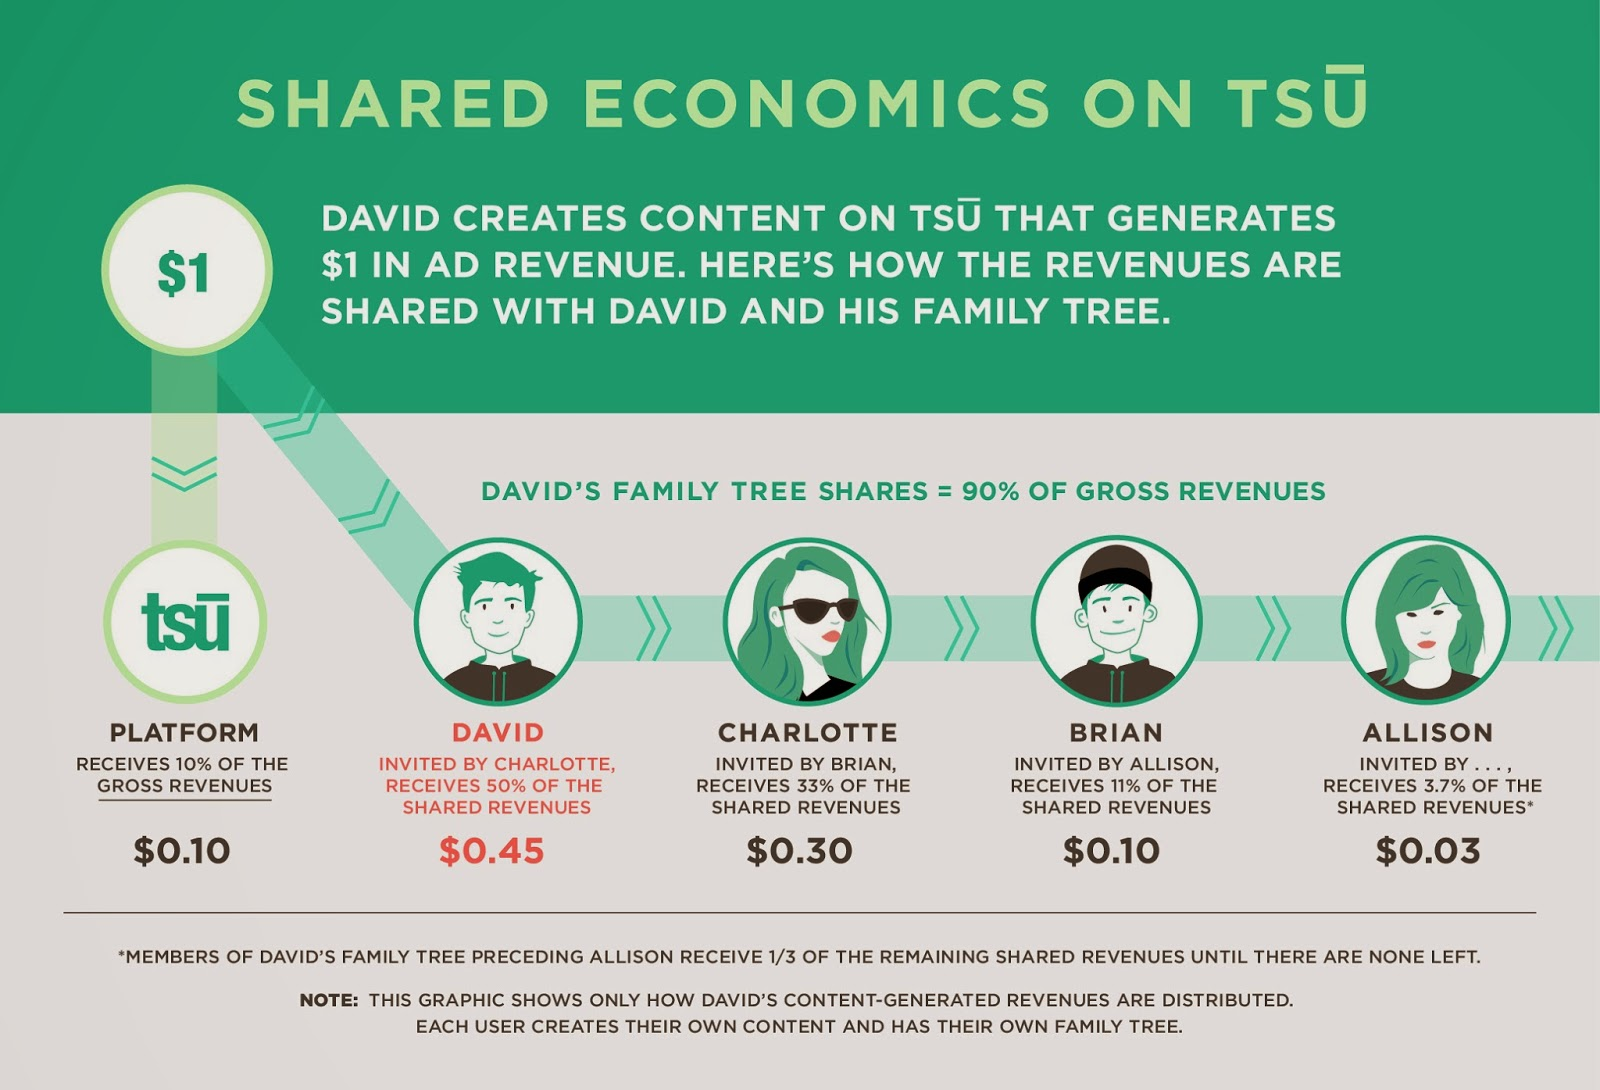 how the revenues are shared between users in tsu